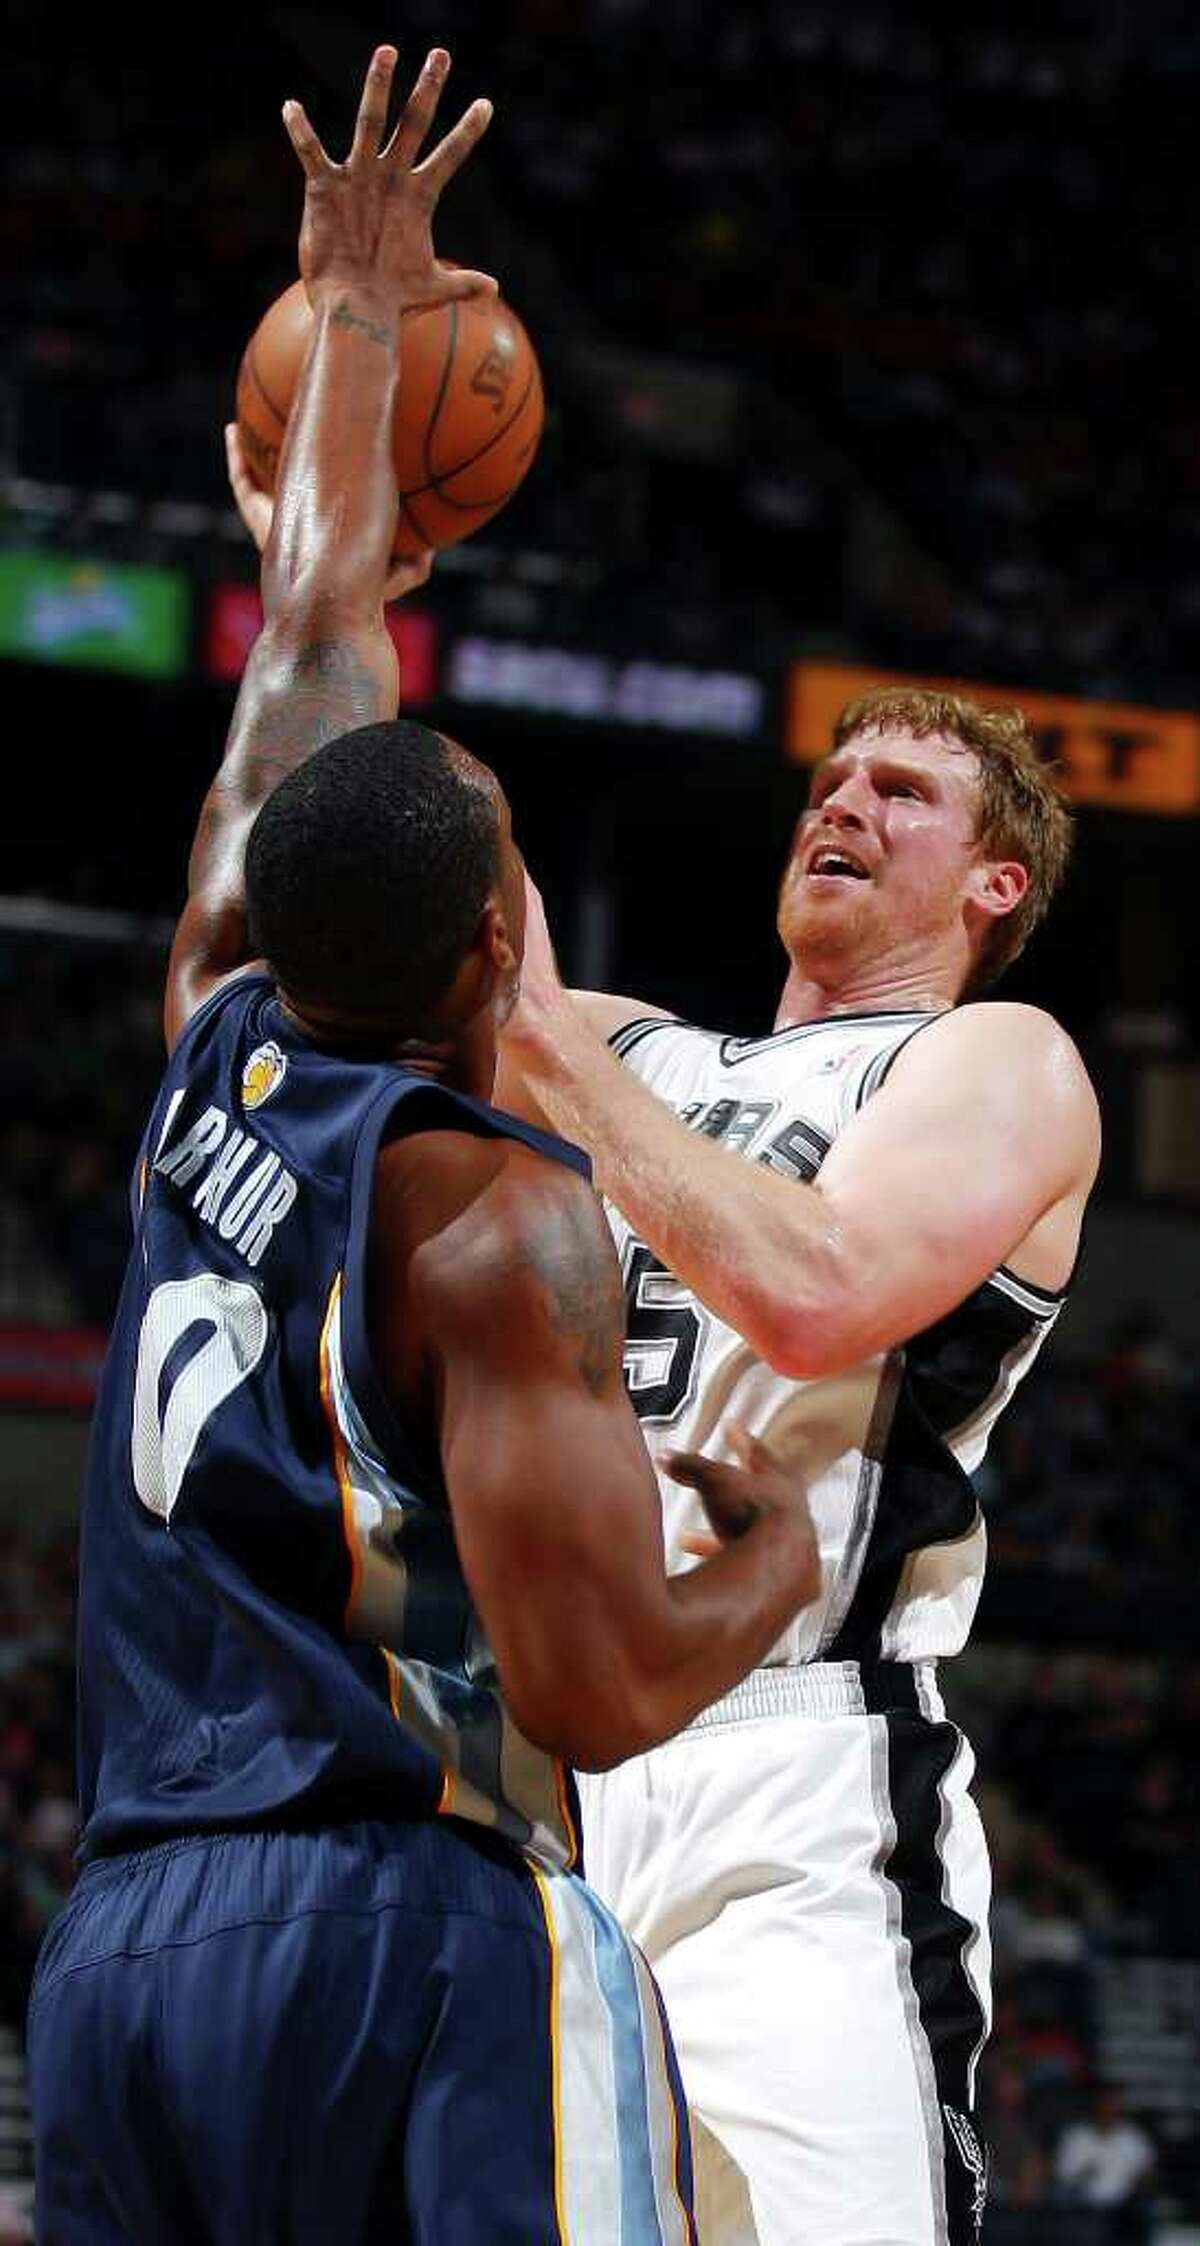 FOR SPORTS - Spurs' Matt Bonner shoots over Grizzlies' Darrell Arthur during second half action Sunday Feb 27, 2011 at the AT&T Center. The Spurs won 95-88. (PHOTO BY EDWARD A. ORNELAS/eaornelas@express-news.net)